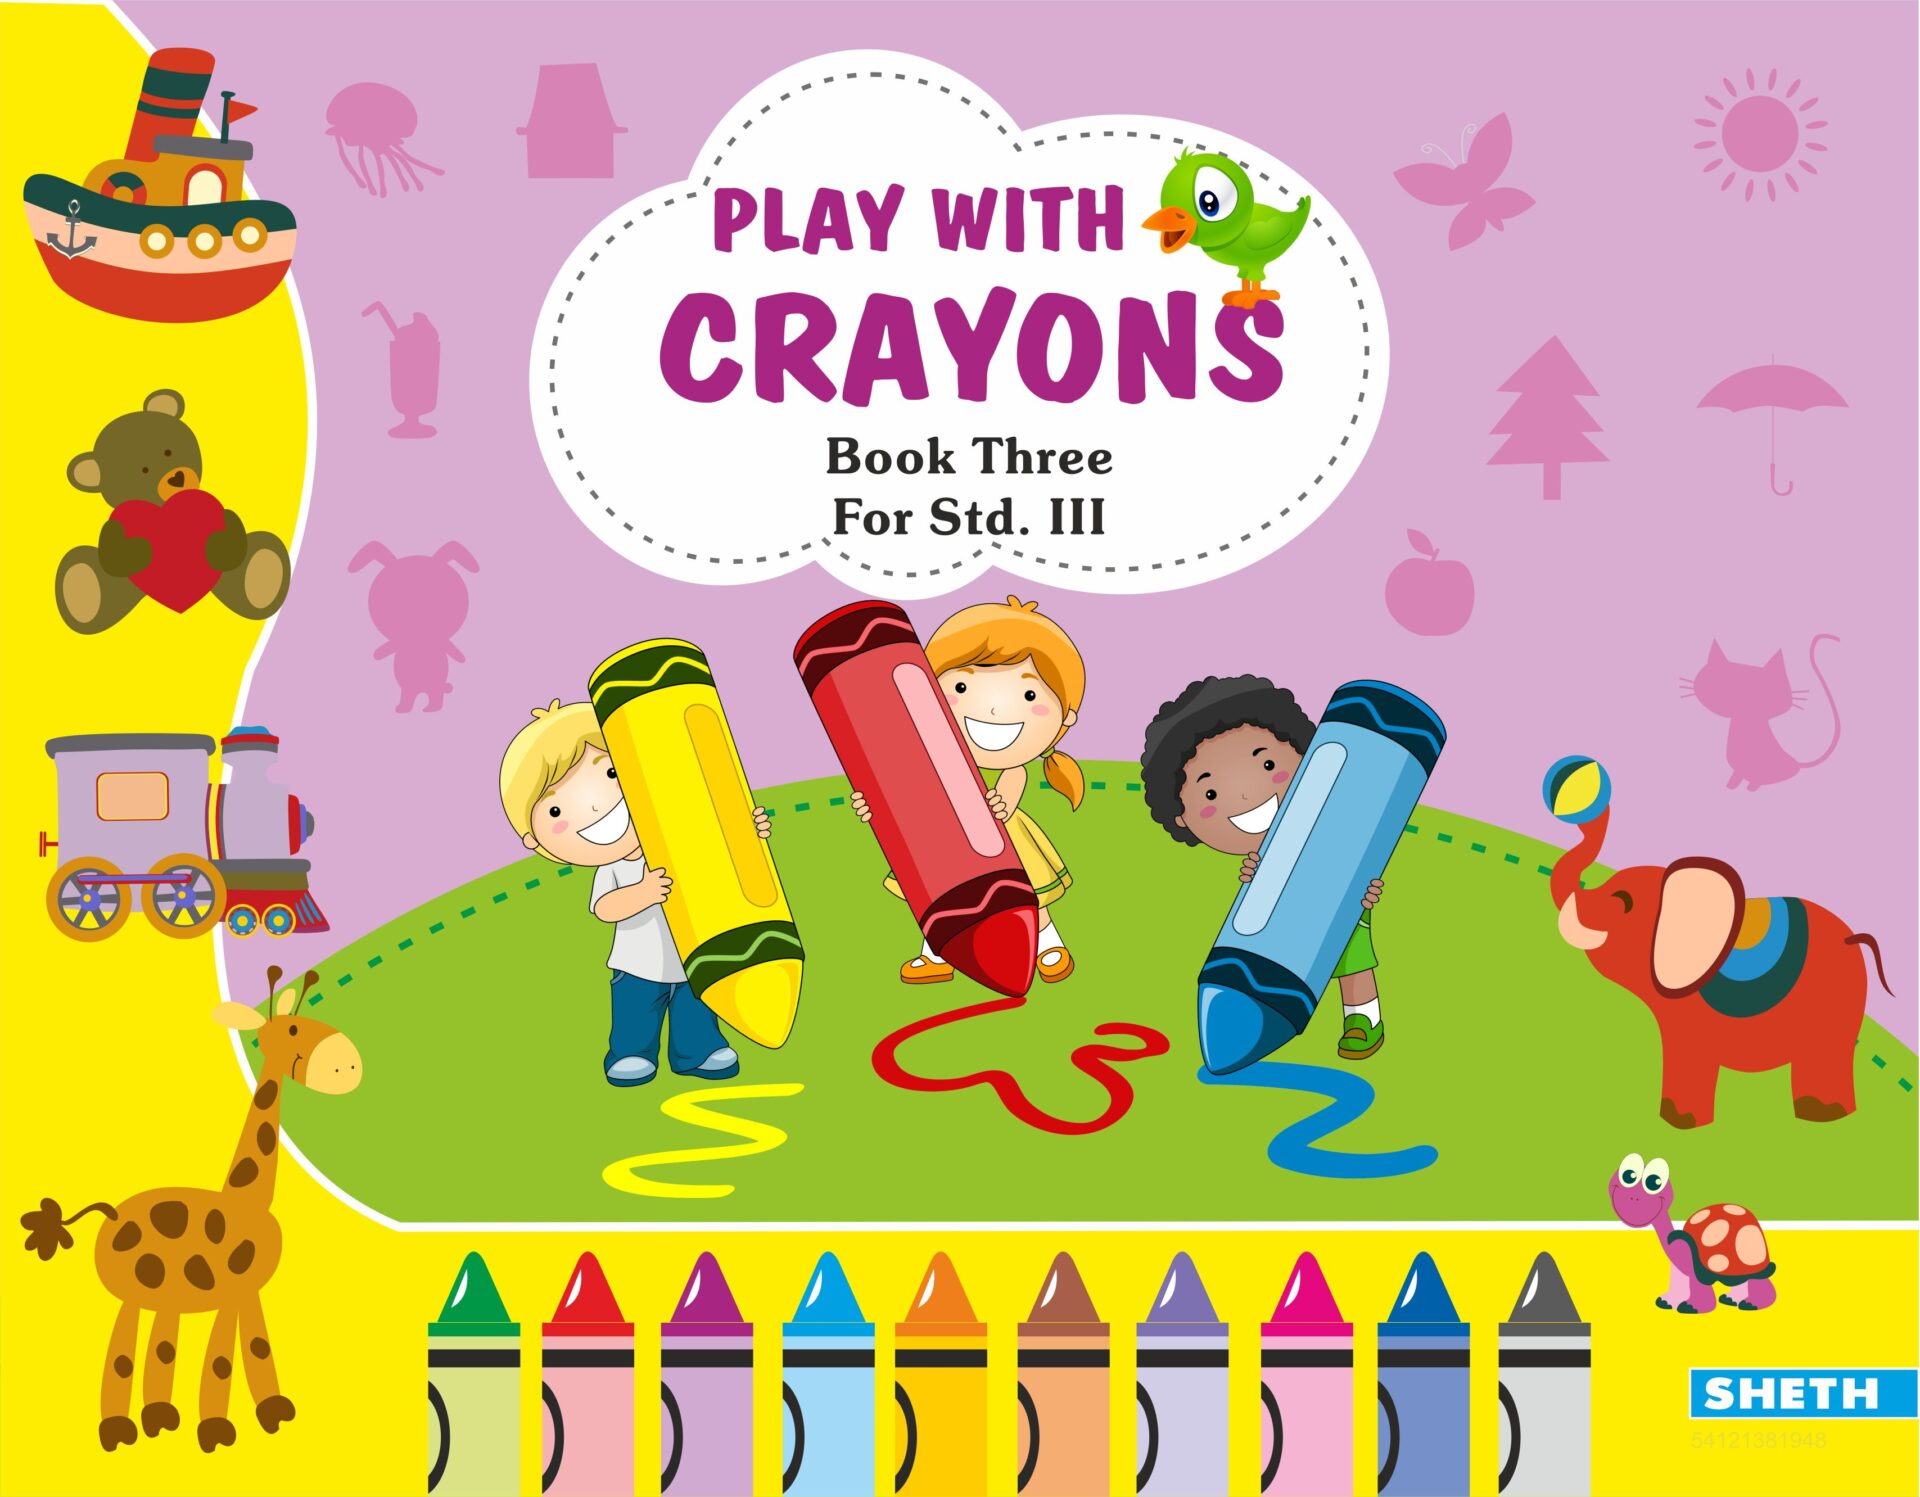 Sheth Books Play with Crayons Book 3 for Std. III 1